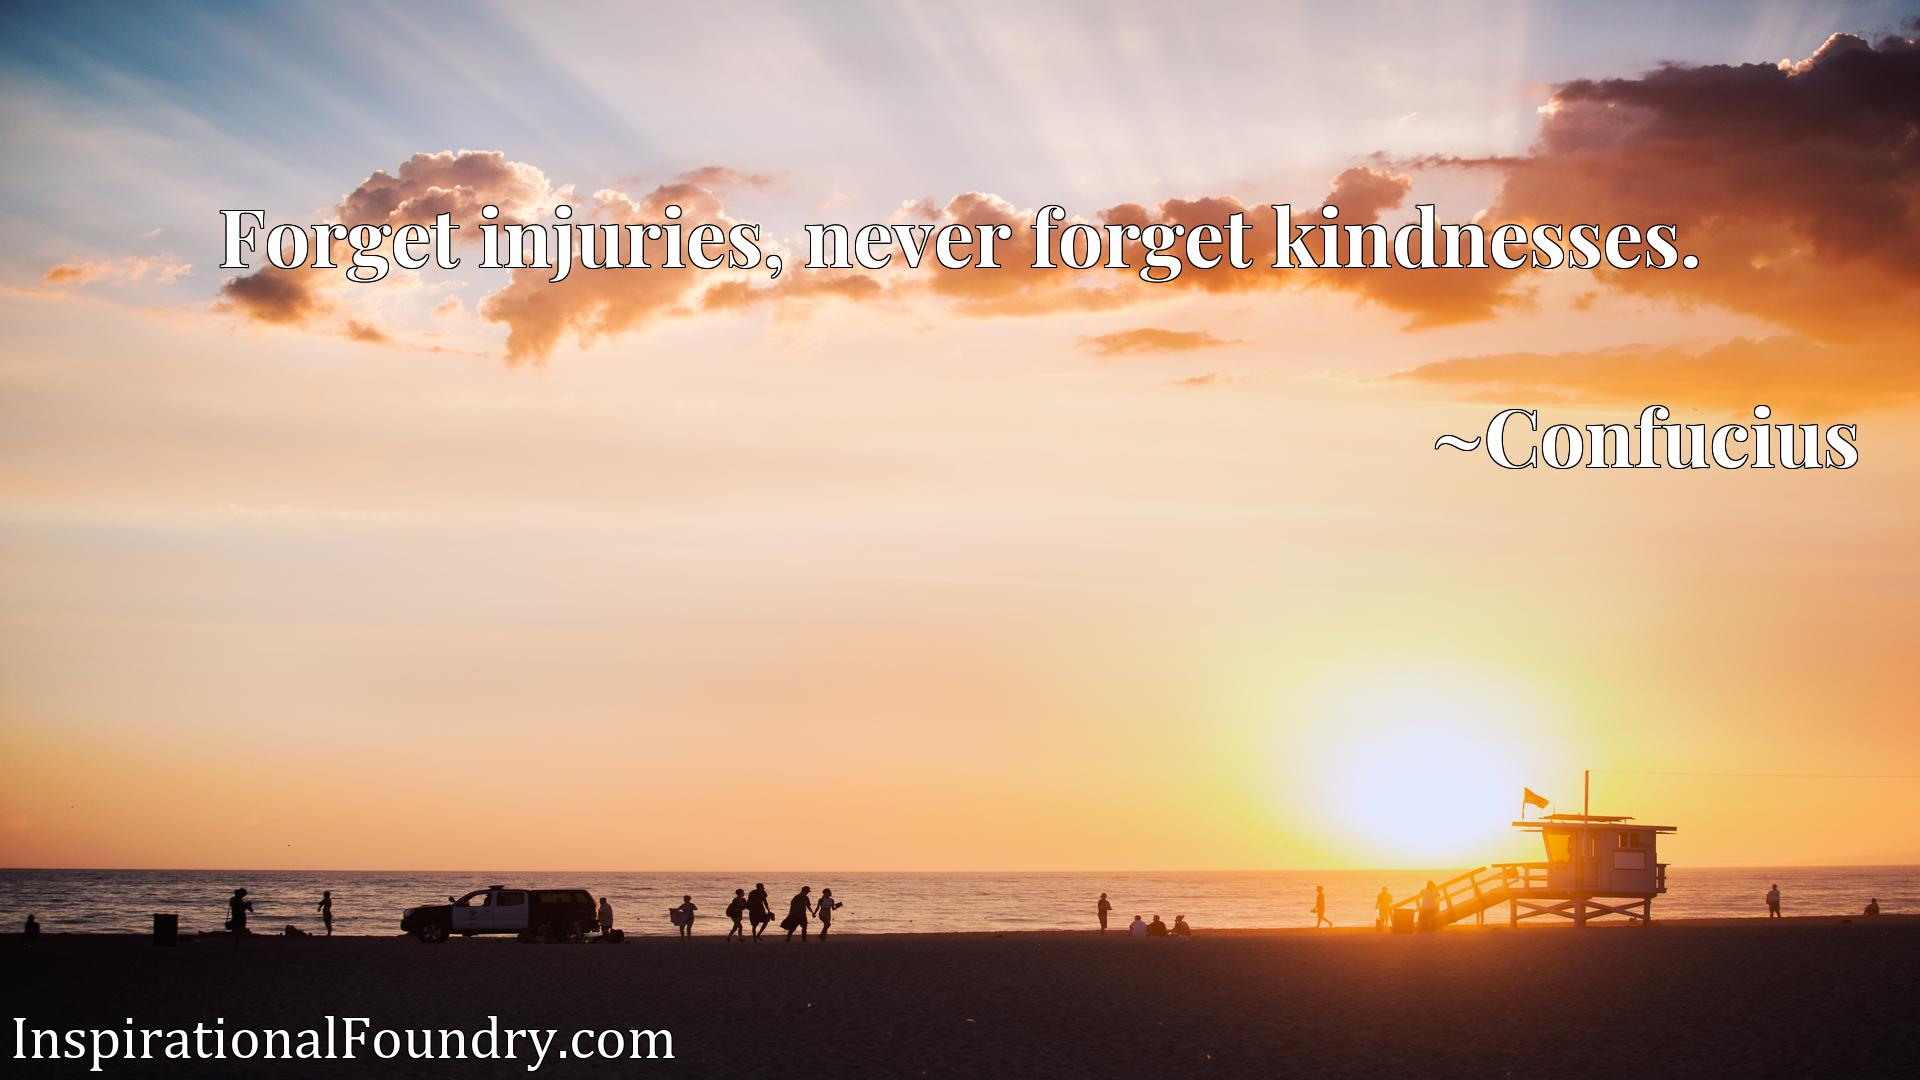 Forget injuries, never forget kindnesses.